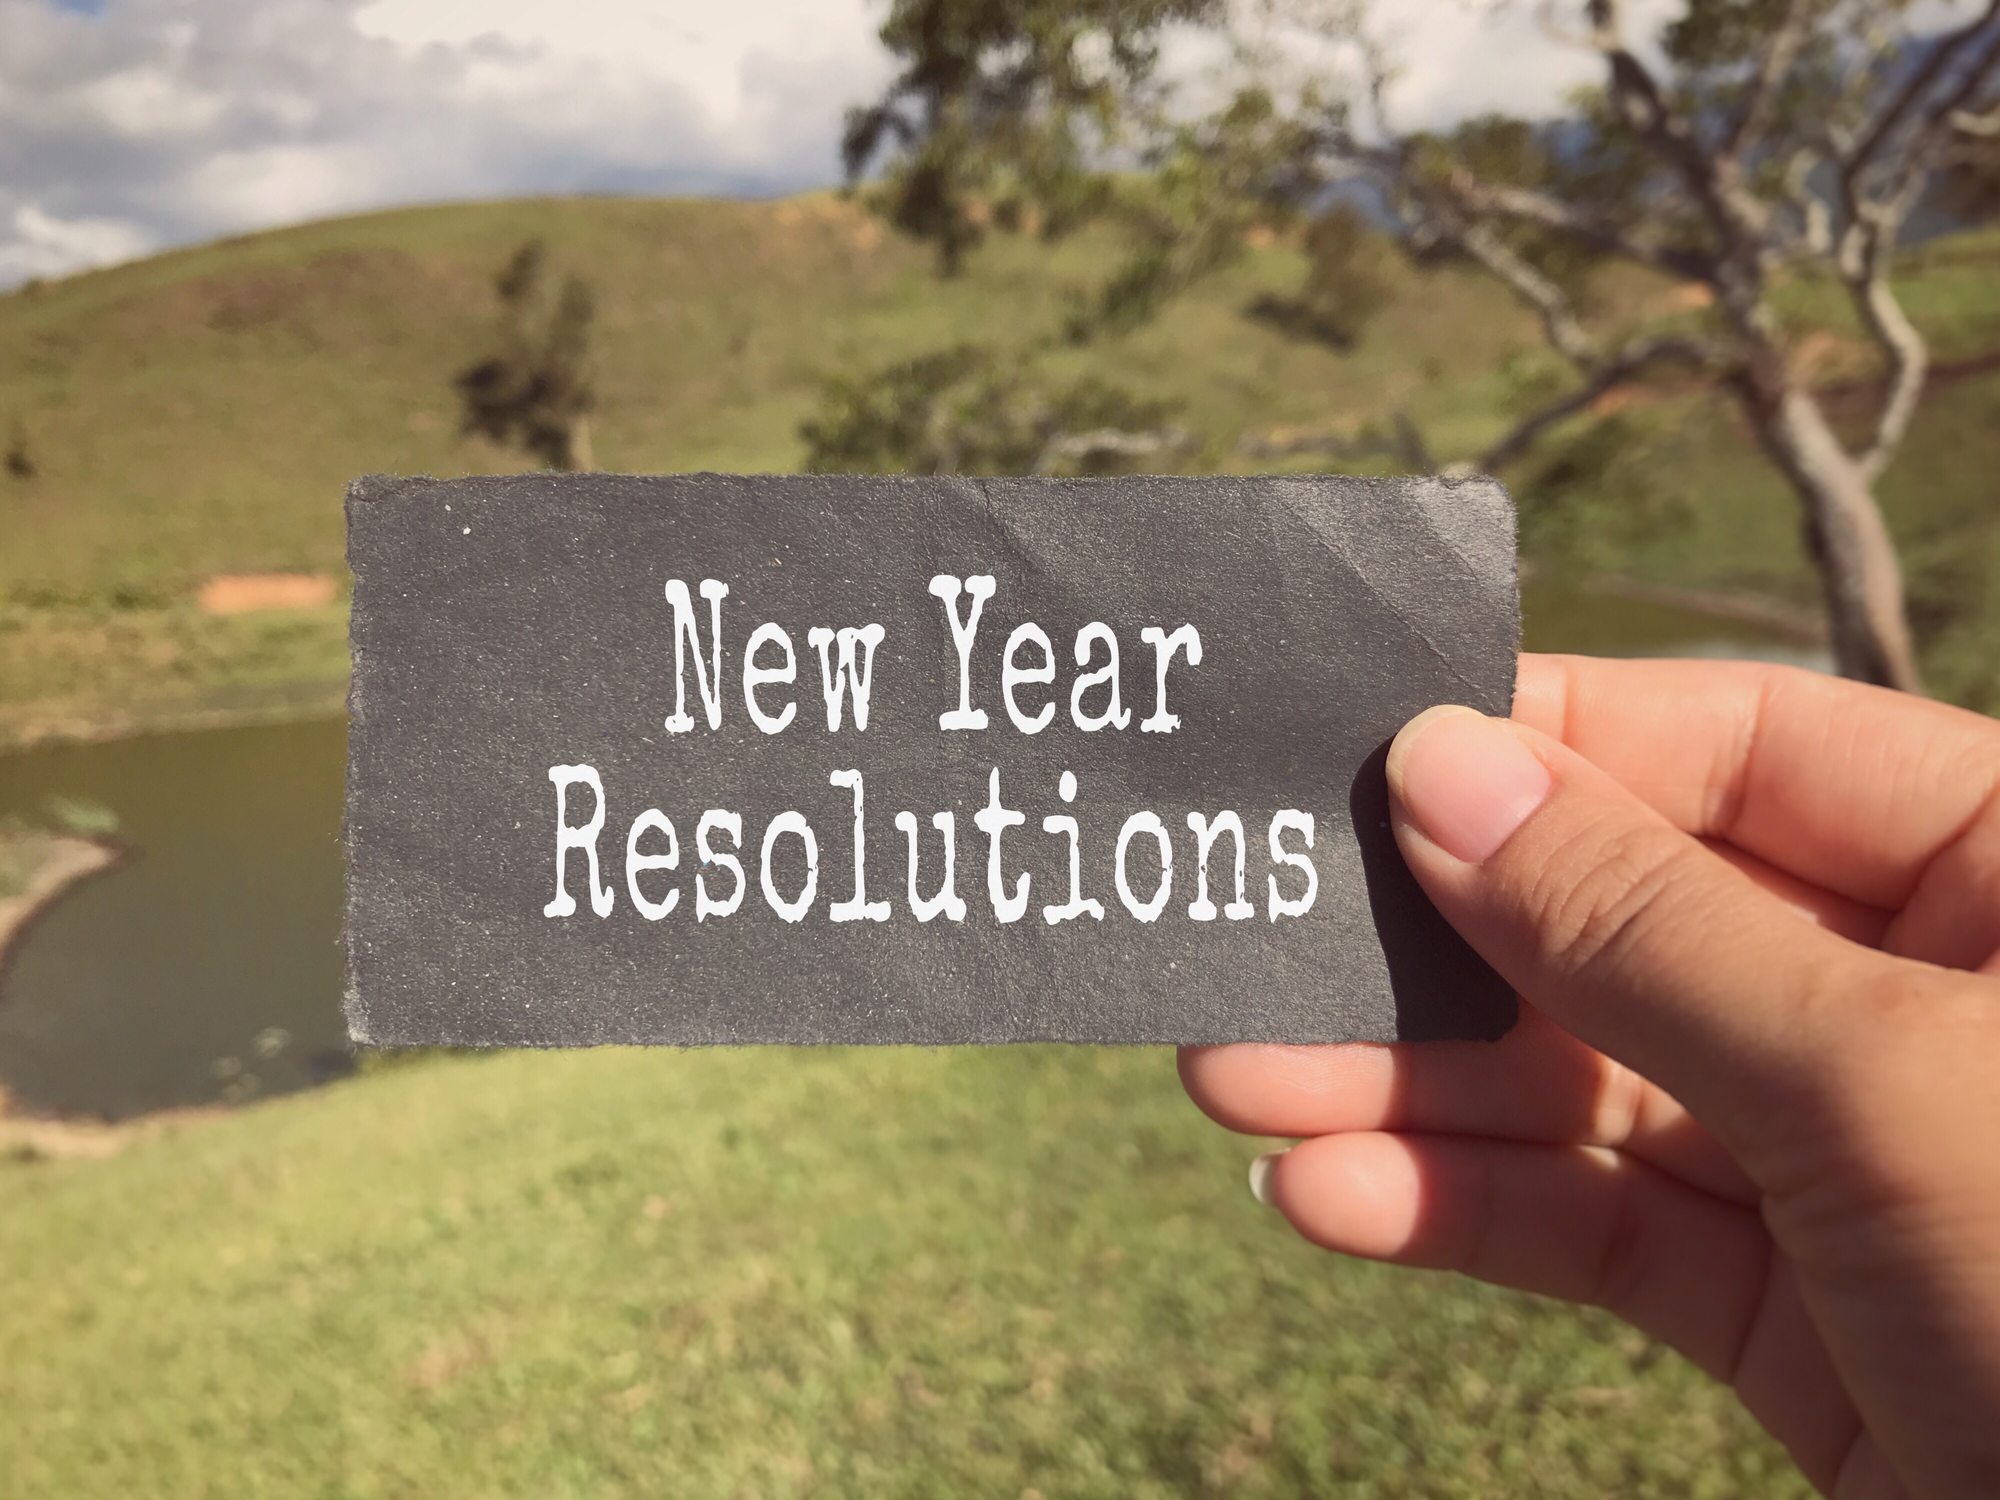 New Year Resolution concept.